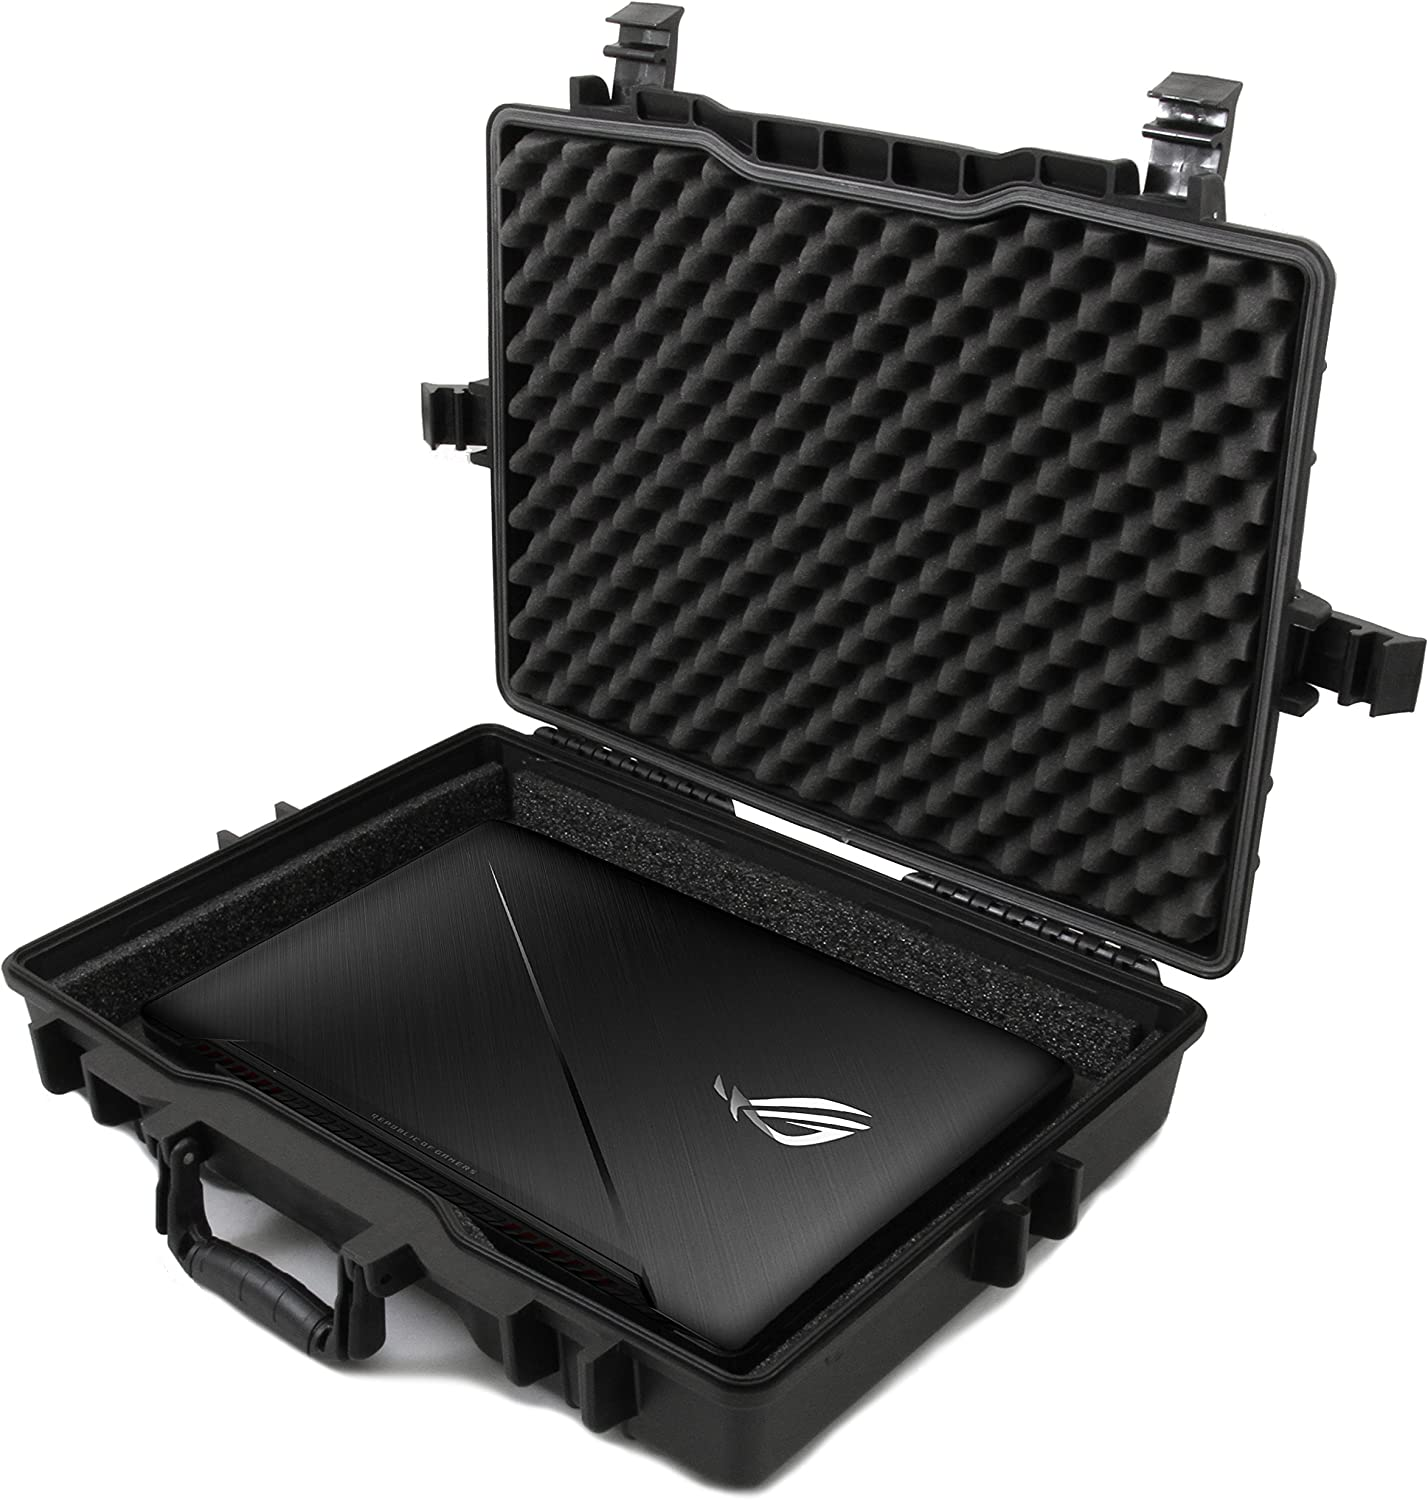 Casematix Custom Waterproof Laptop Case Compatible with Asus Republic of Gamers Gaming Laptops, Designed for Asus Rog Strix, Rog Zephyrus M, Asus Fx505, Asus Fx73ve or Asus Fx503vd and Accessories